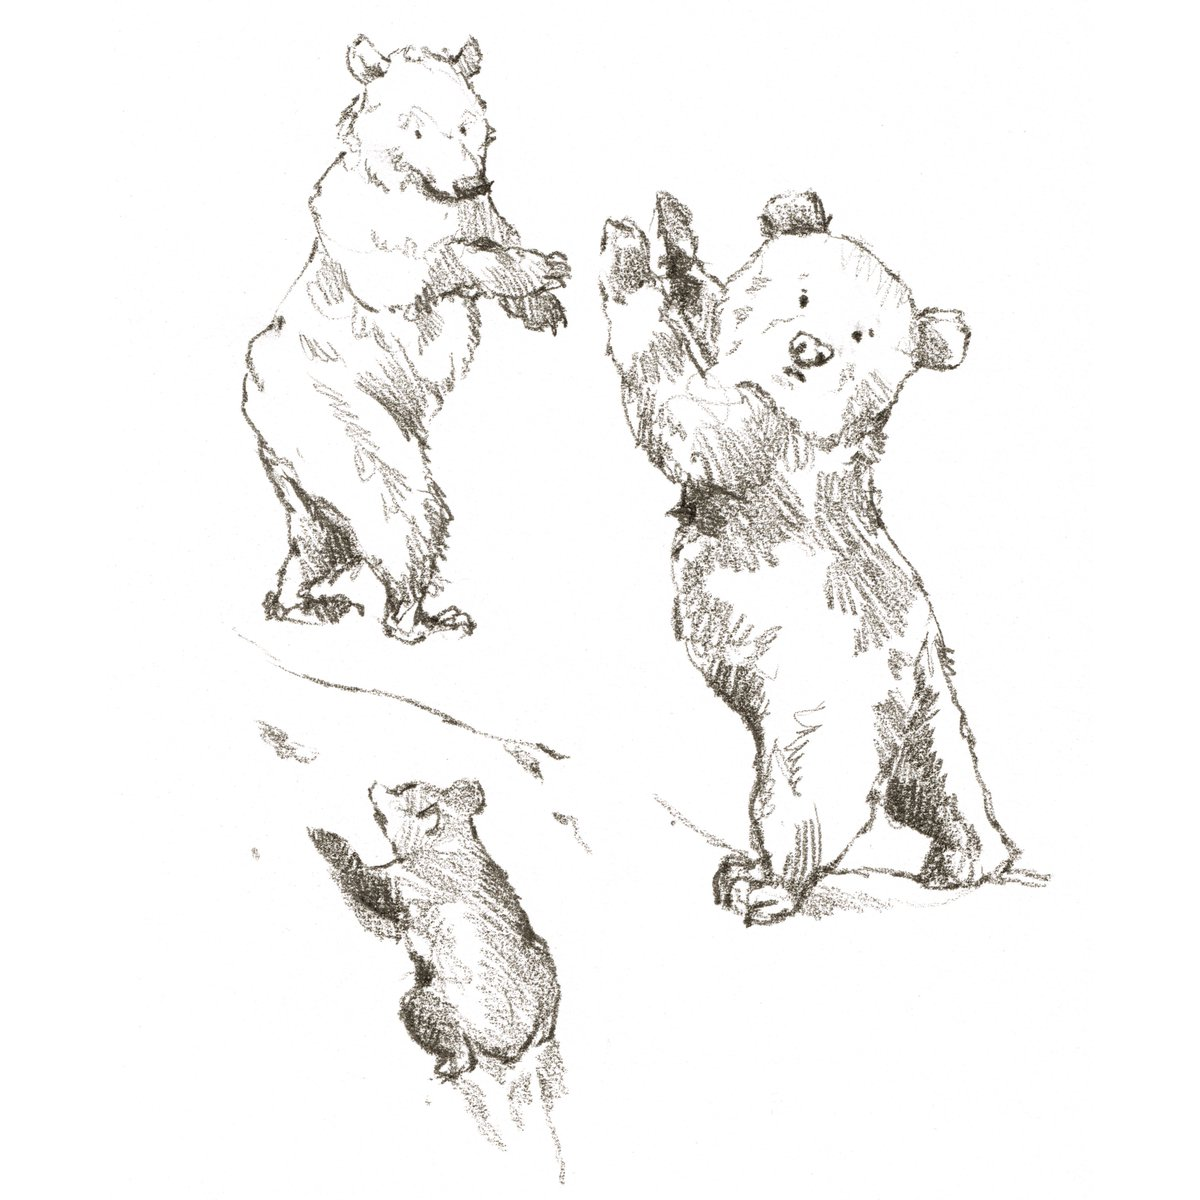 Iain Welch On Twitter Today I Am All About Drawing Bear